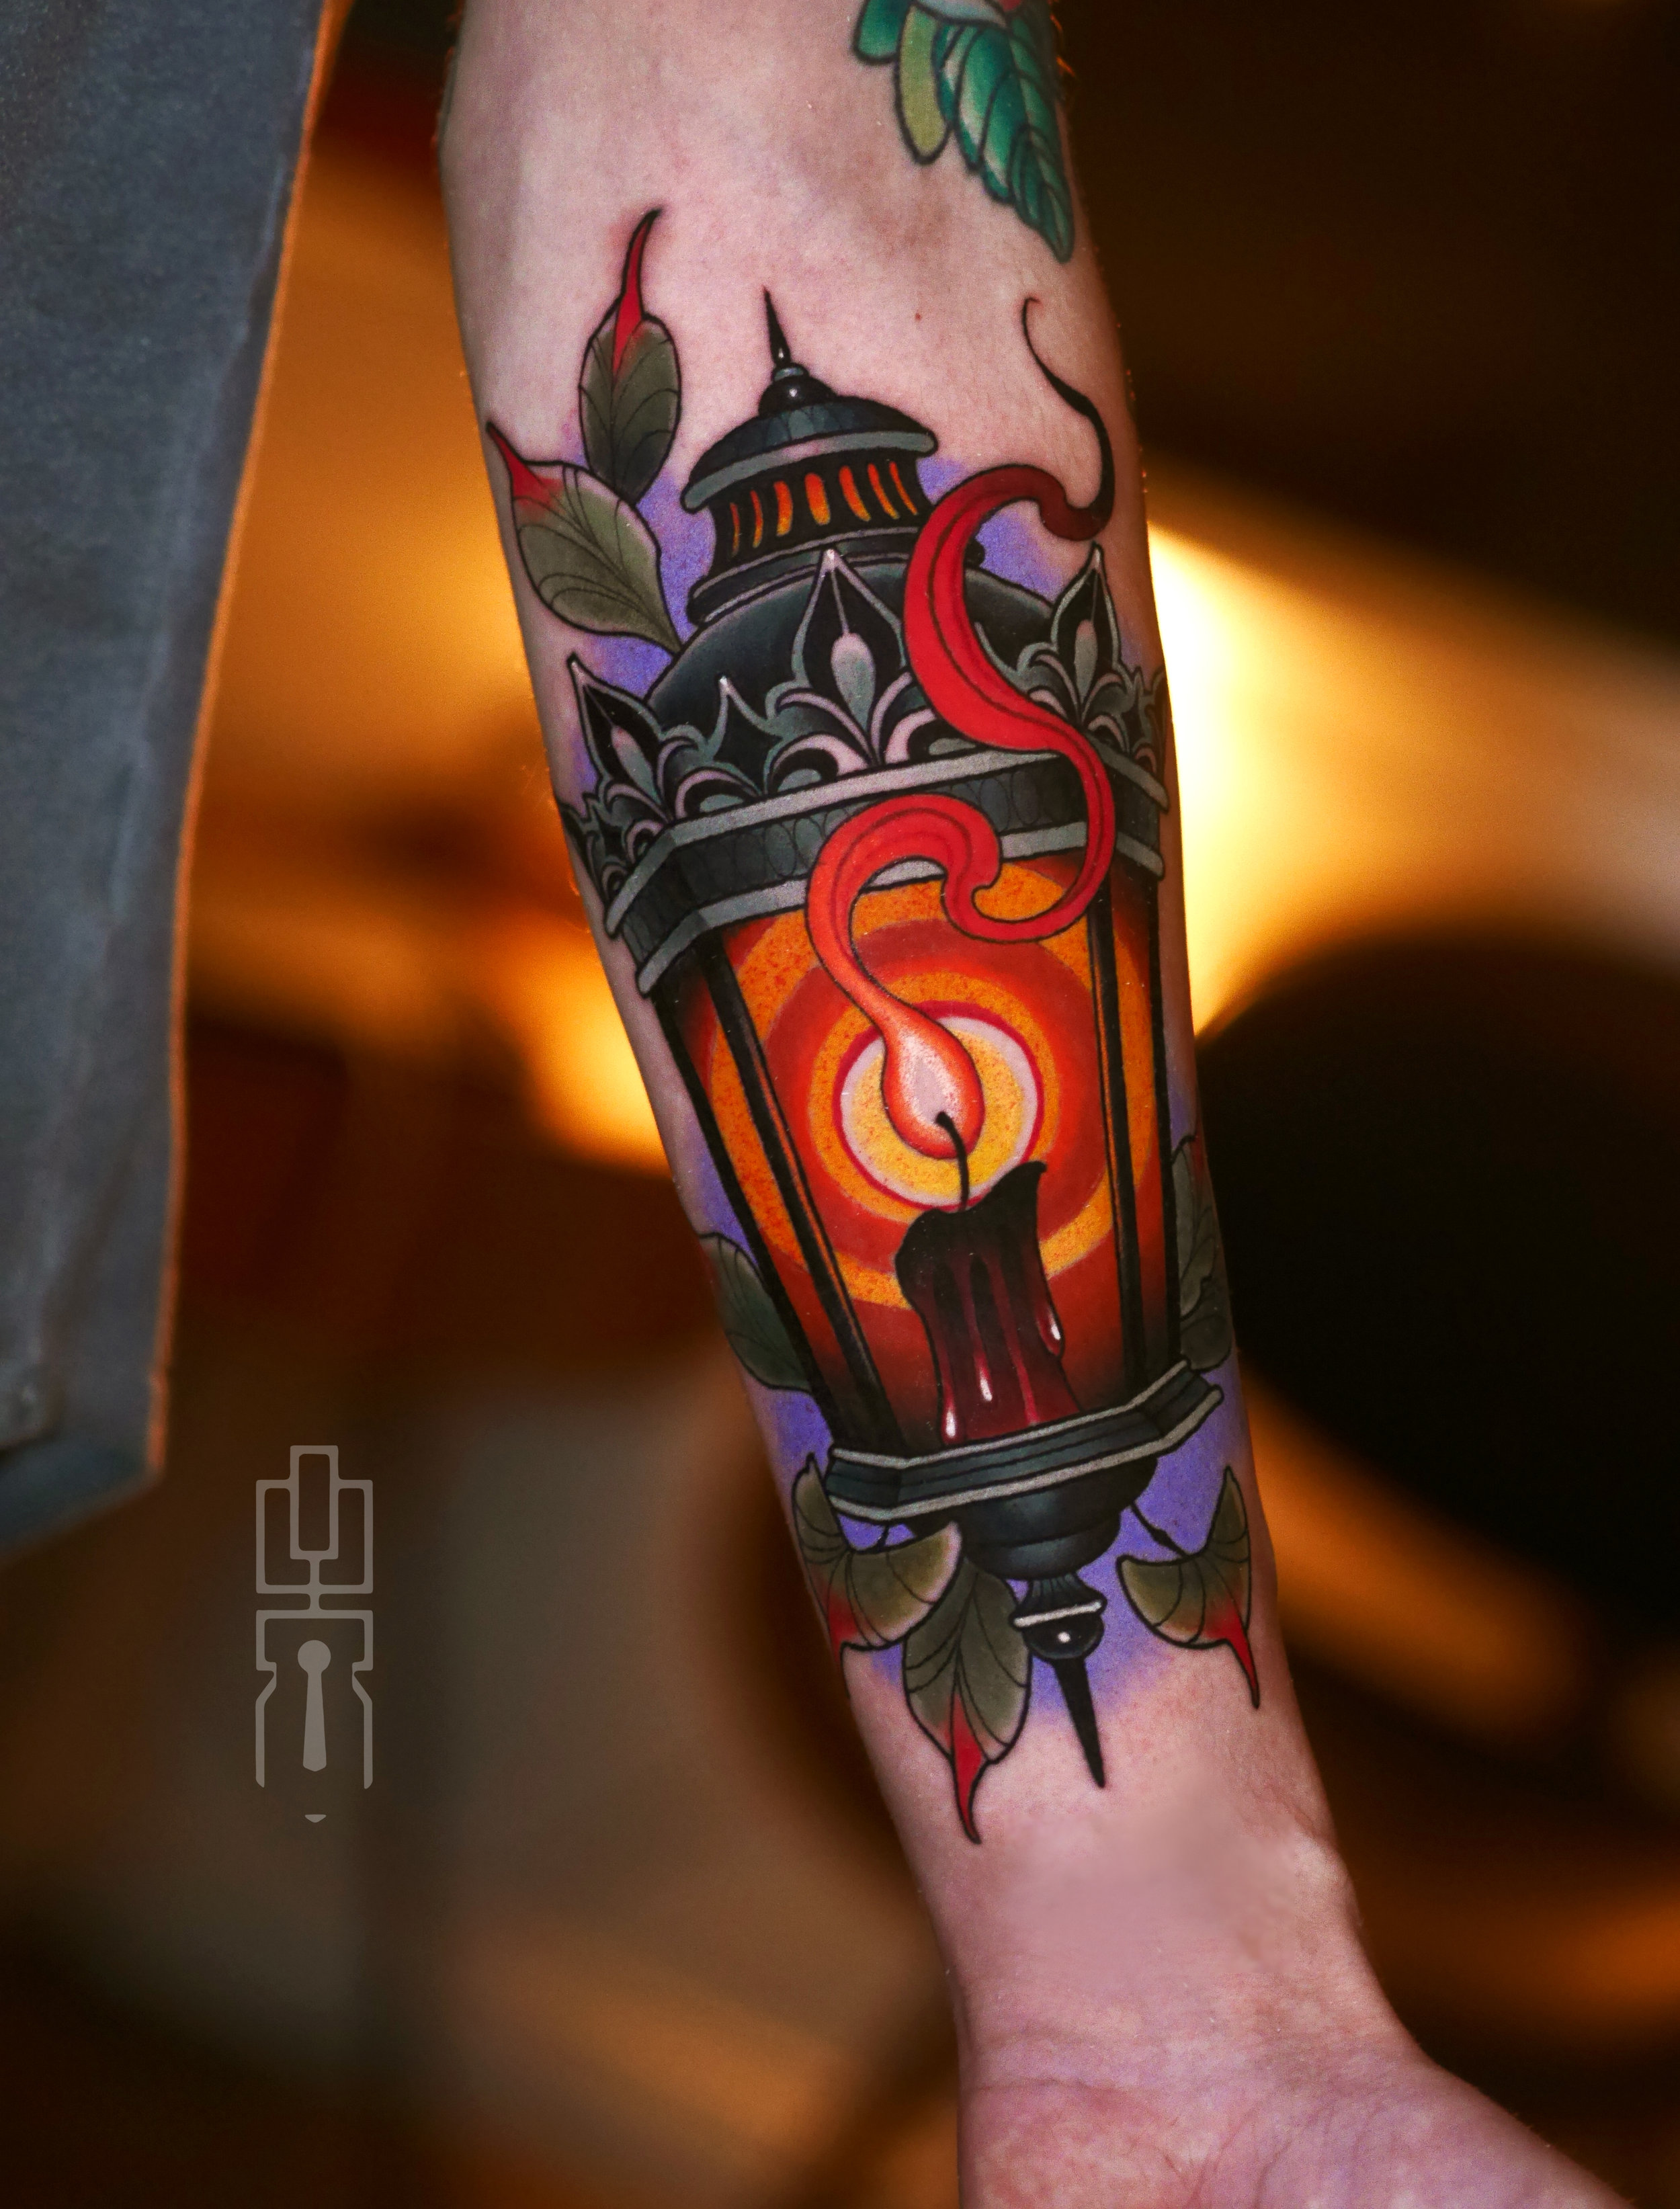 neotraditional lantern tattoo 2 london reese.jpg